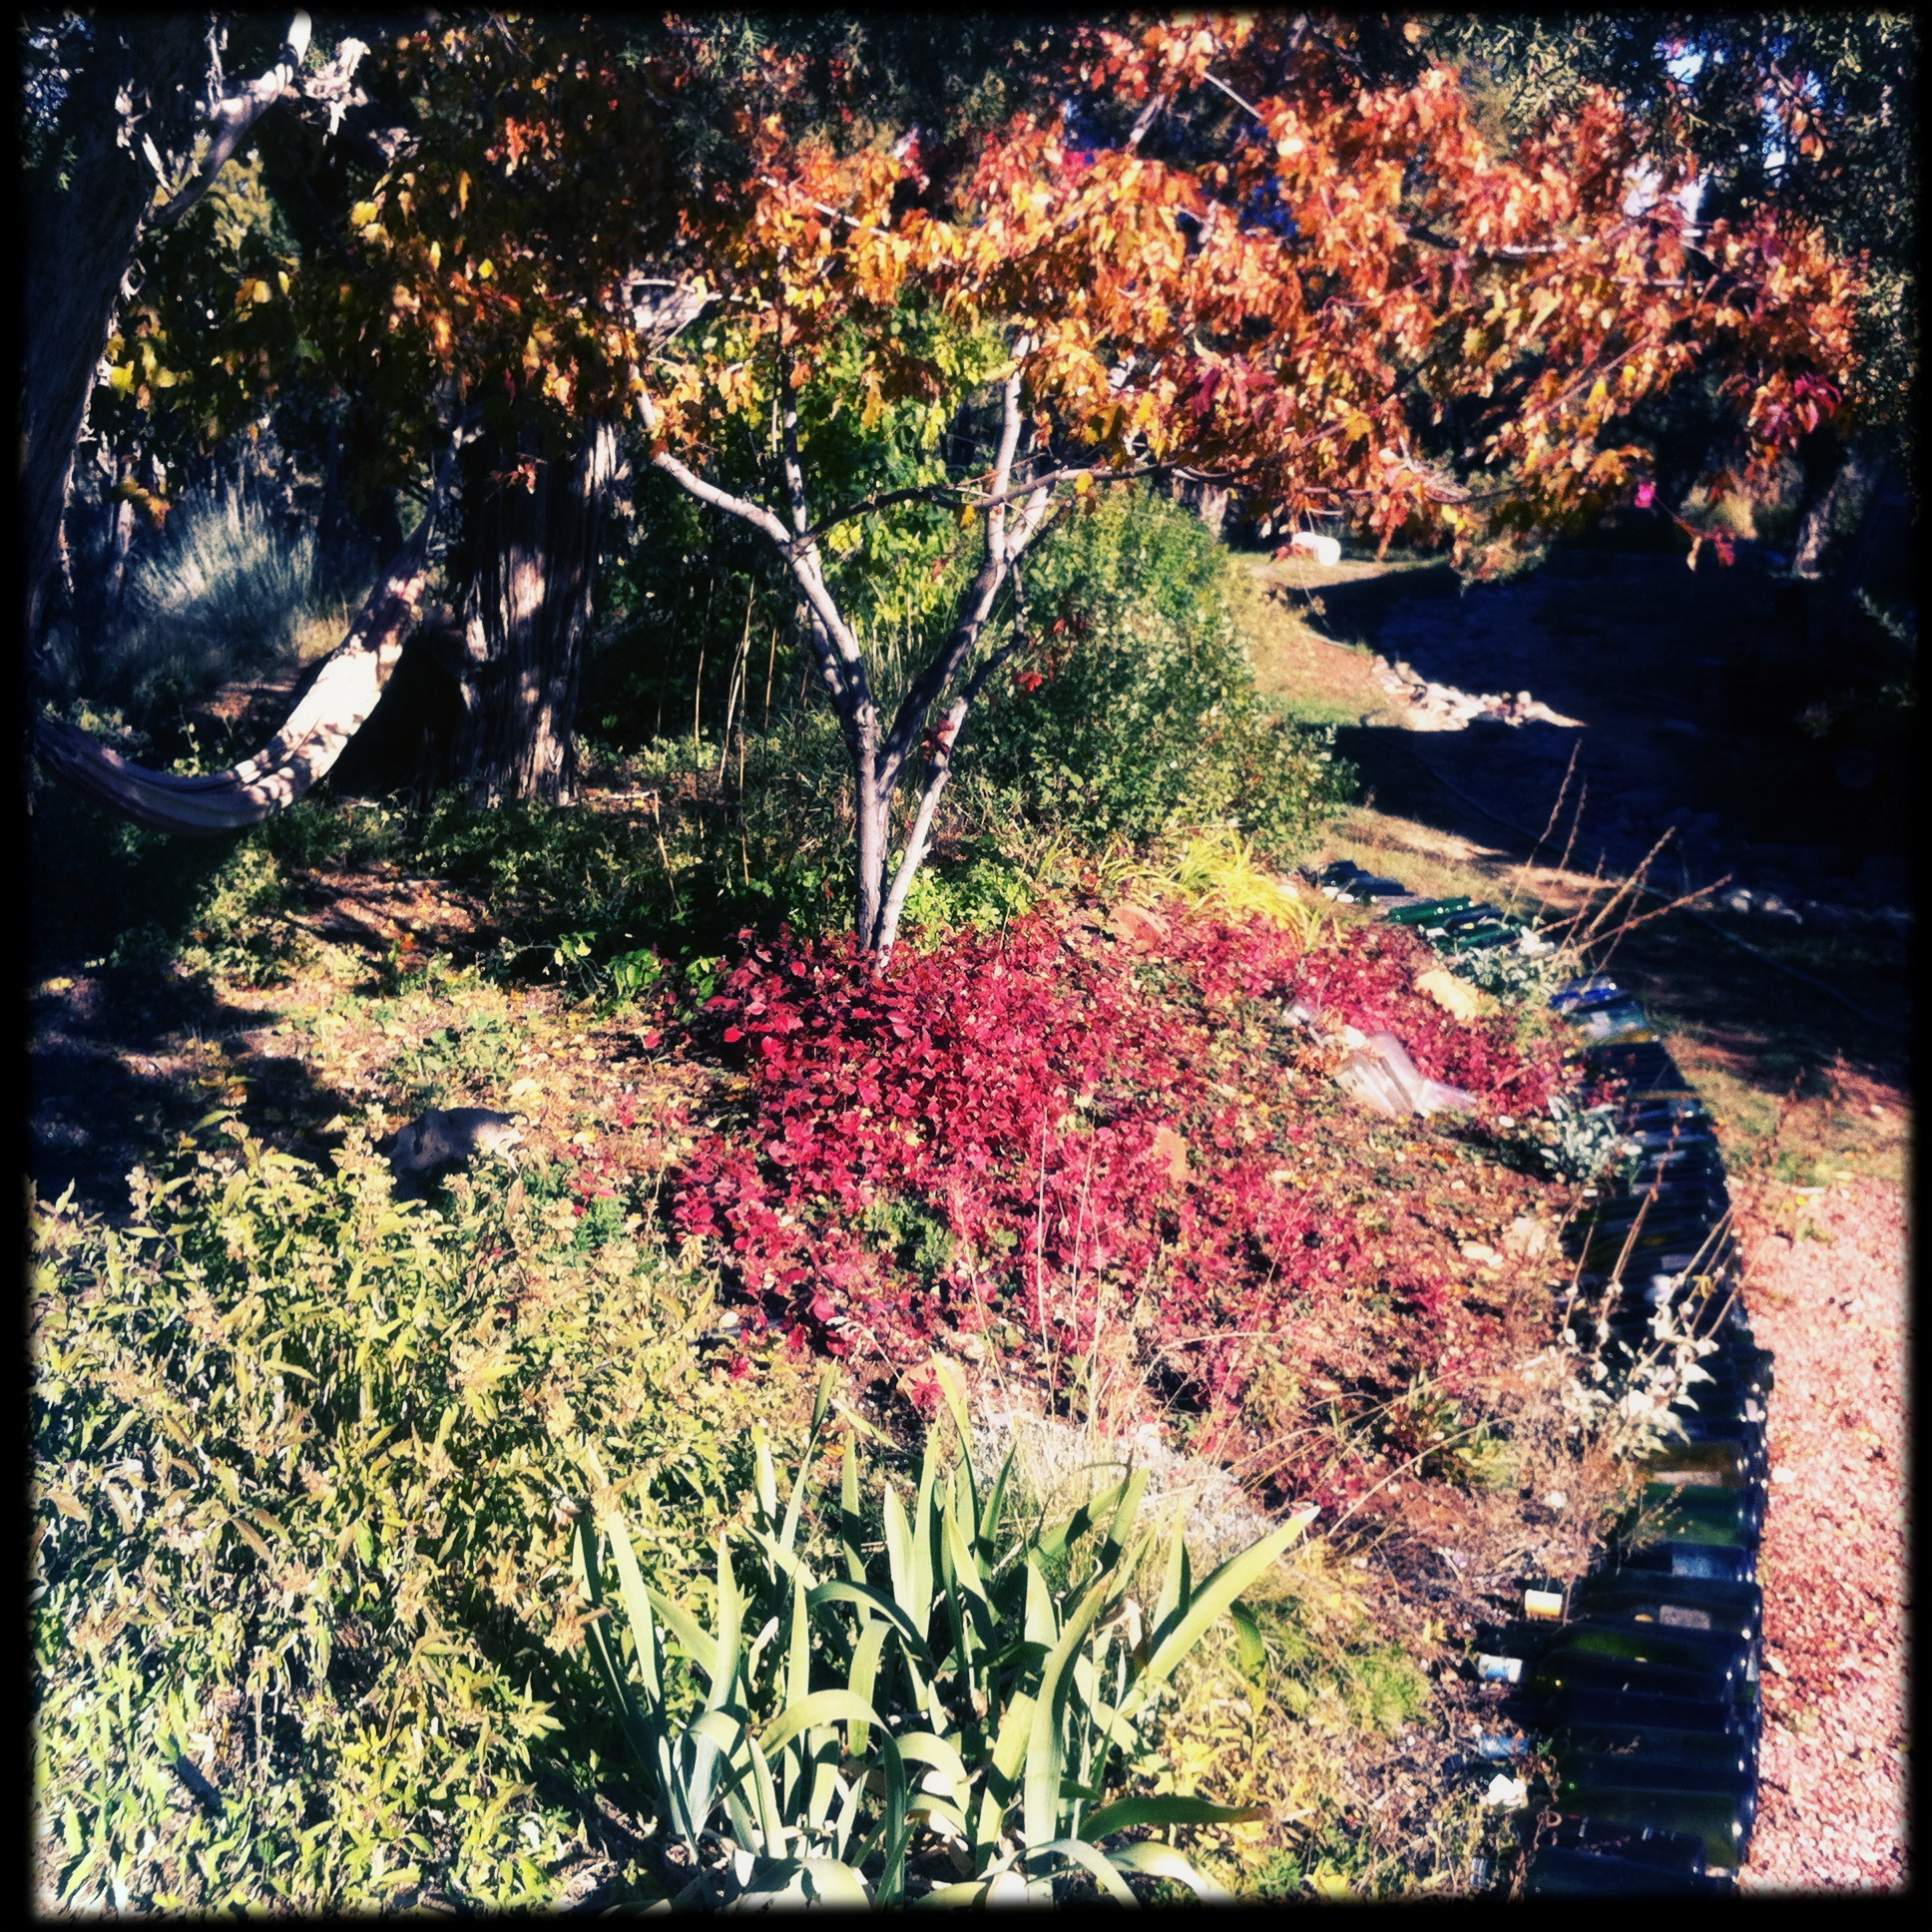 October 13, the Wall of Inebriation holds back the flow of color from the berm, notably burgundy hardy plumbago, and another Amur maple. This one never has gone scarlet, but tends toward orange.